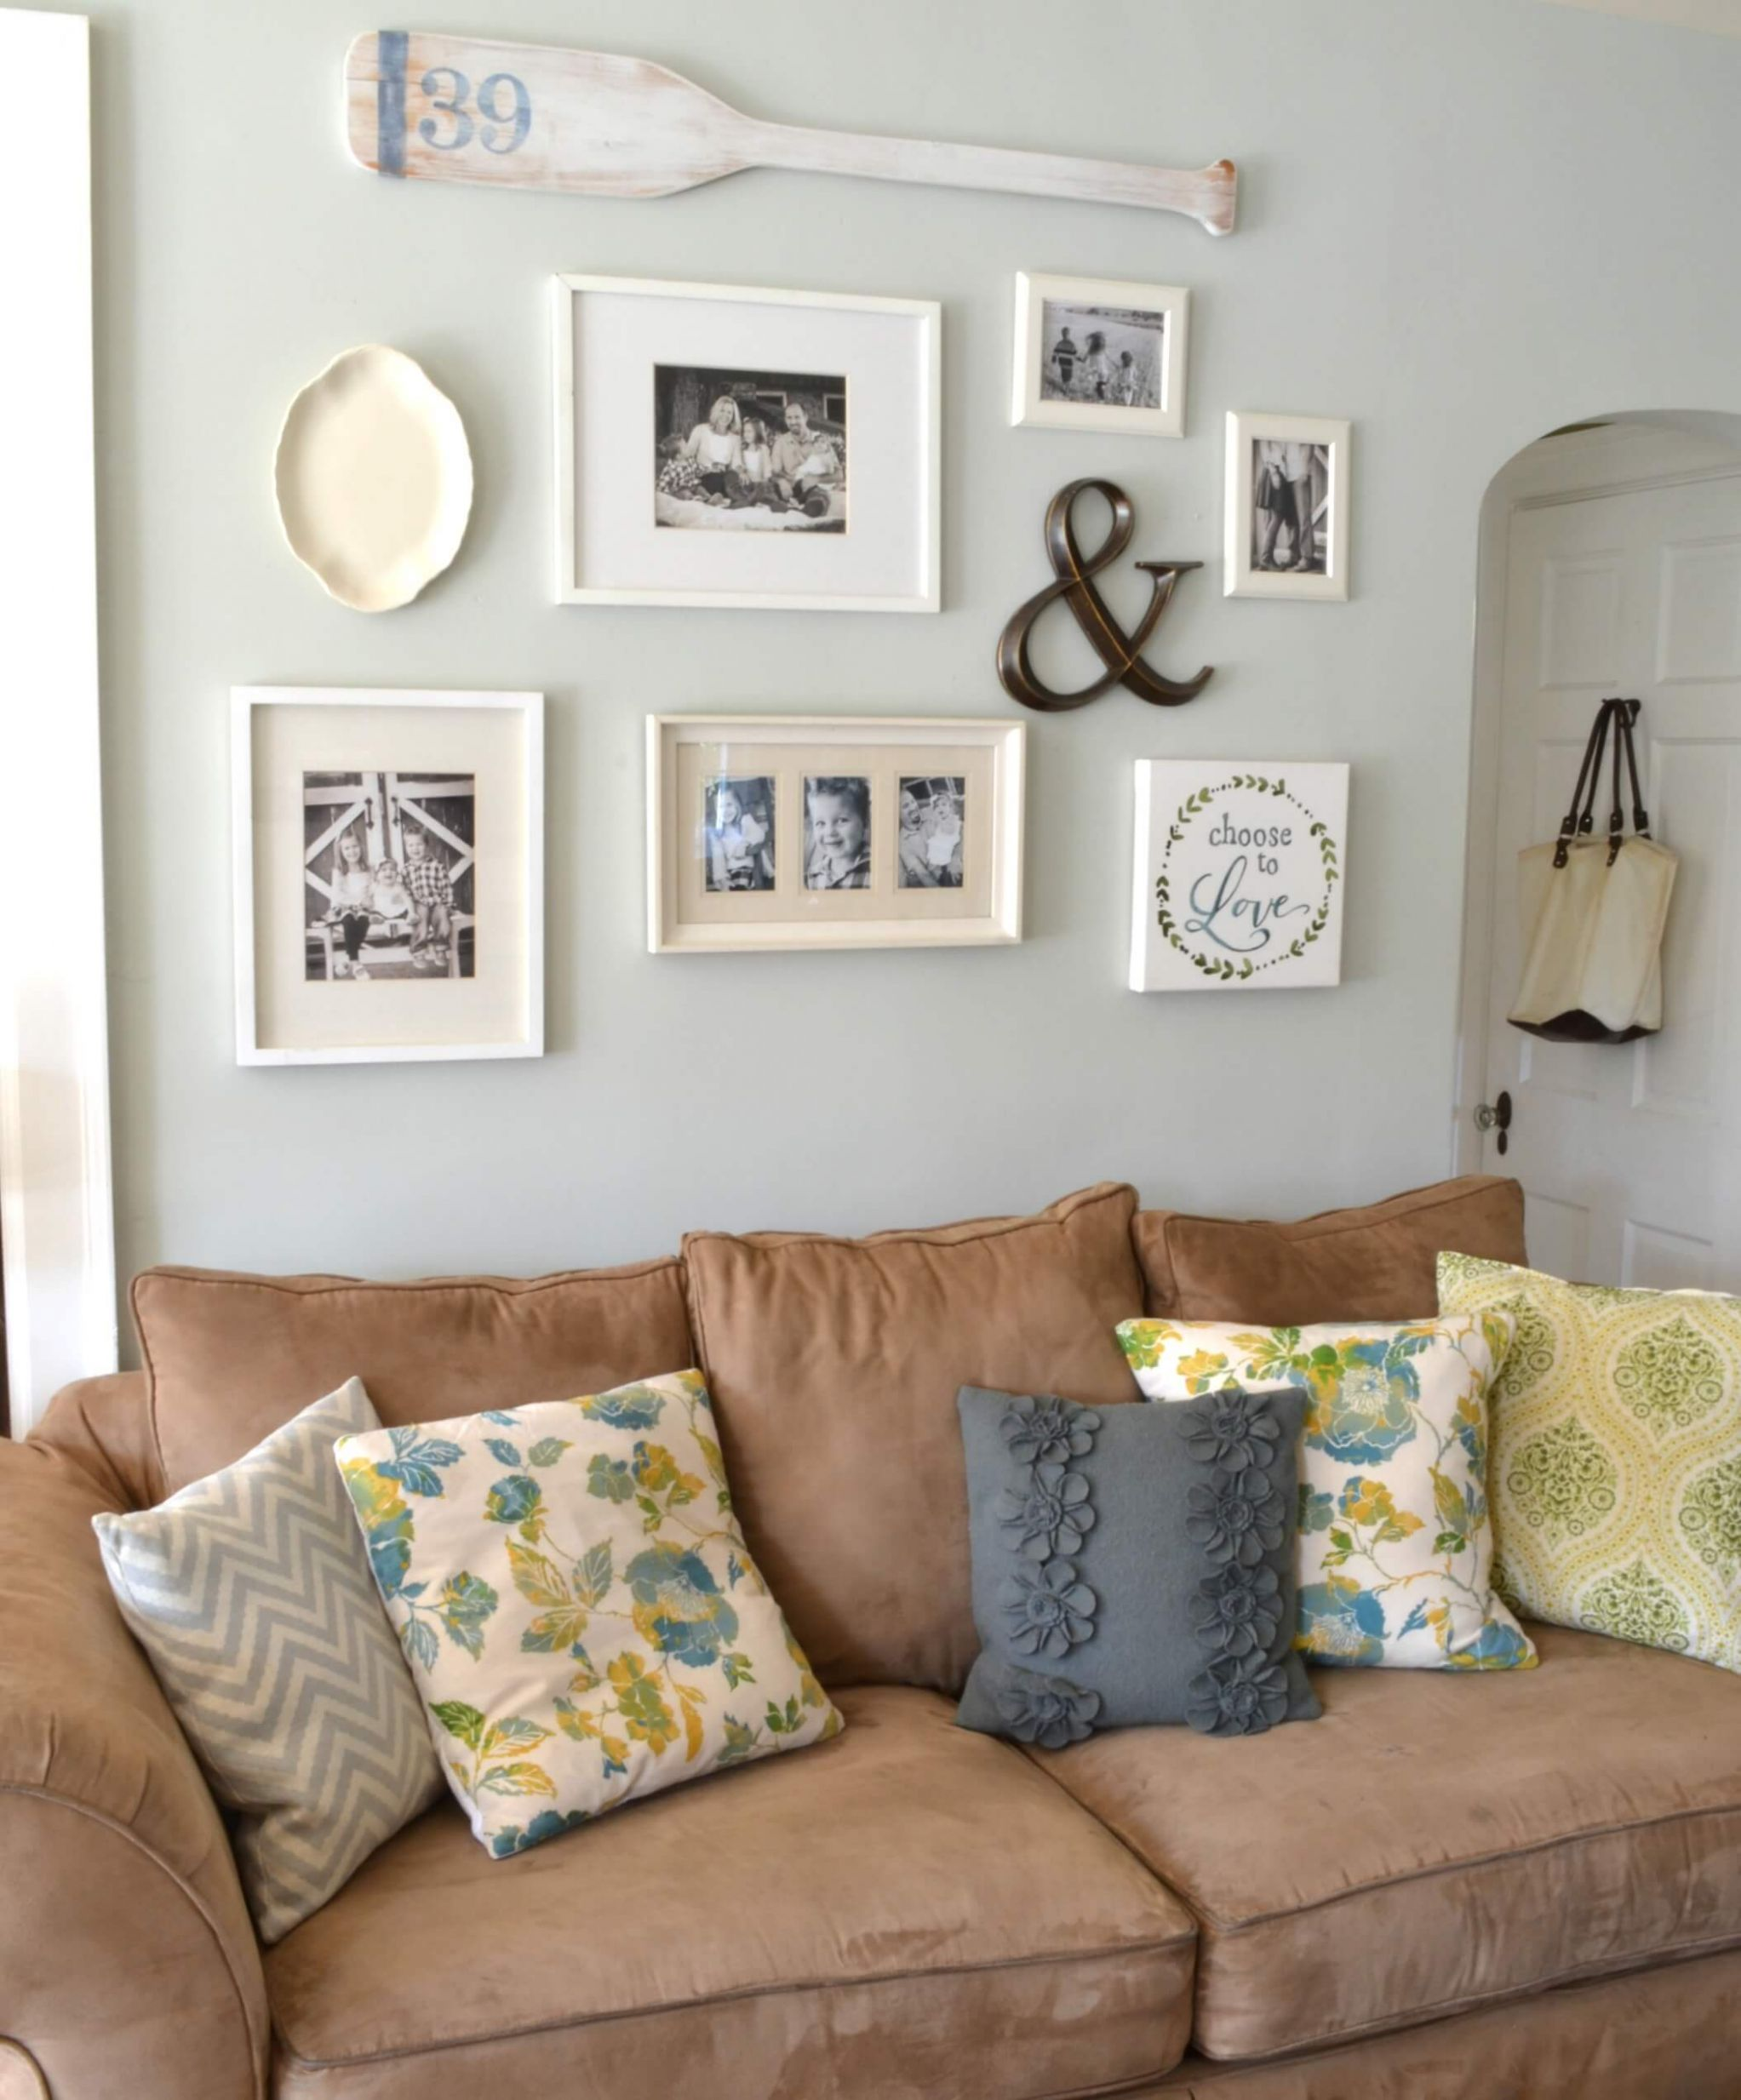 10 Best Decoration Ideas Above the Sofa for 10